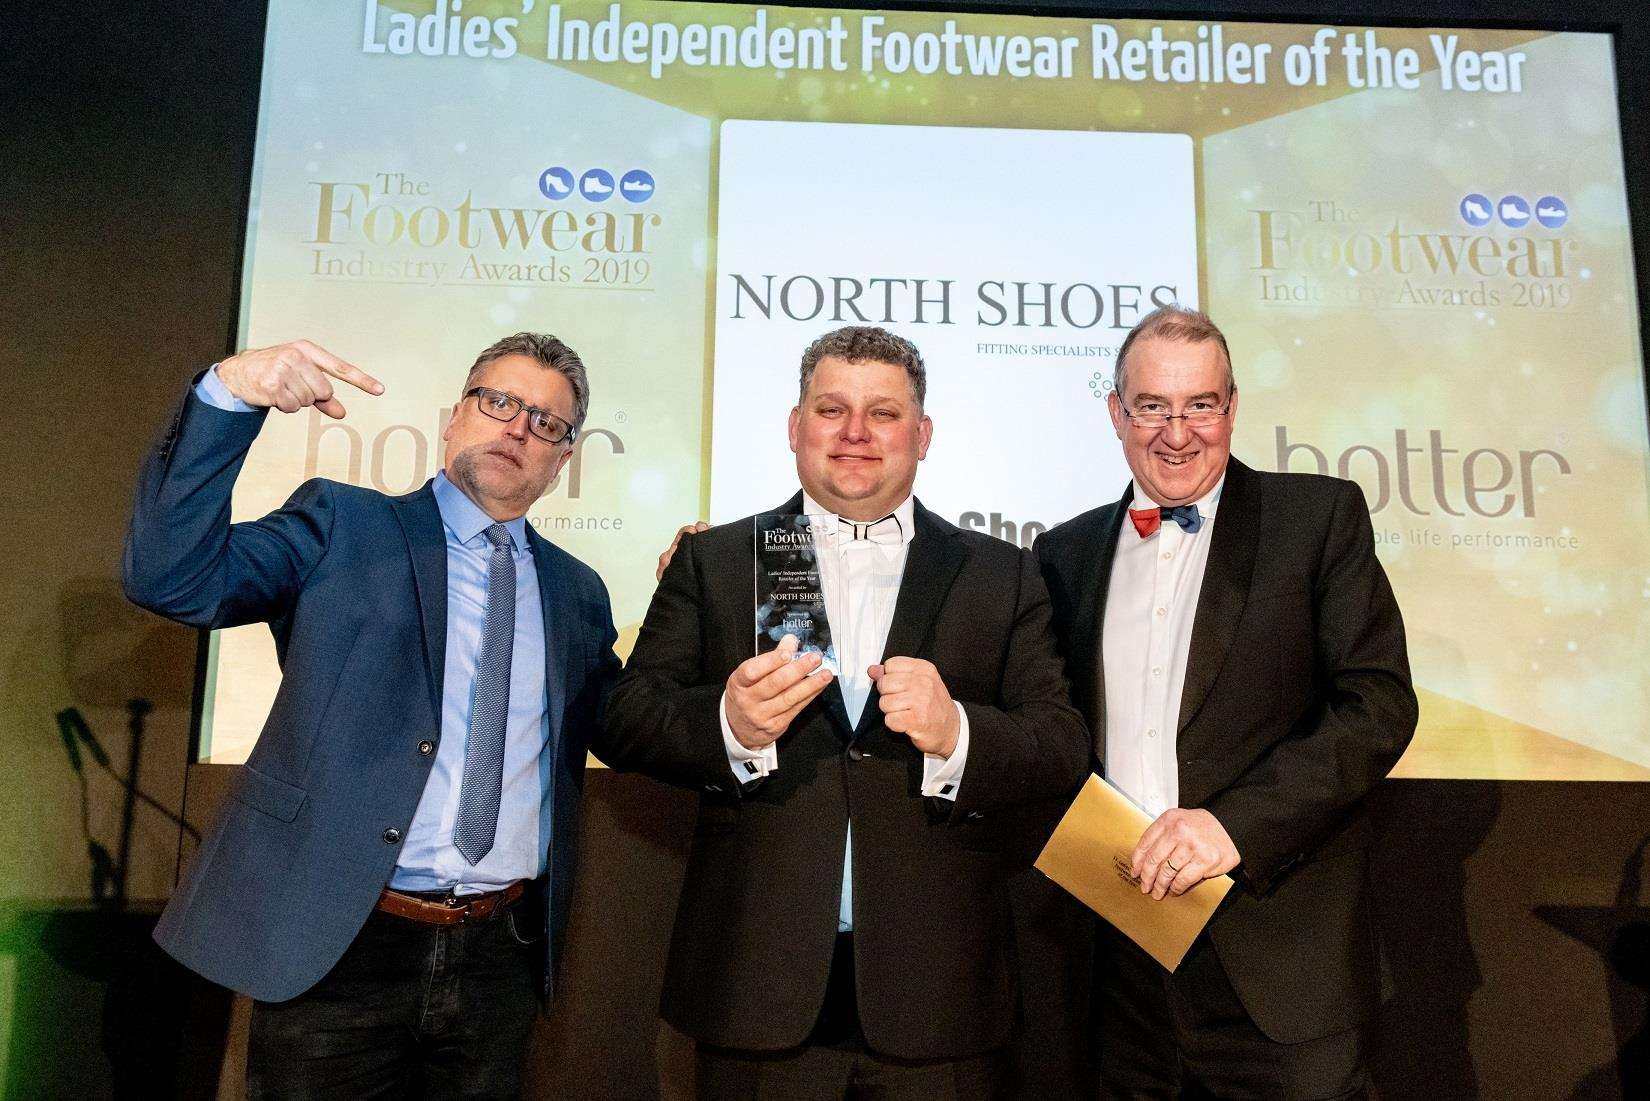 James North (centre) proudly displays the award for ladies independent retailer of the year alongside Footwear Industry Awards host Sean Collins (left) and Robert Perkins, chief operating officer of category sponsors, Hotter Shoes. (7306838)